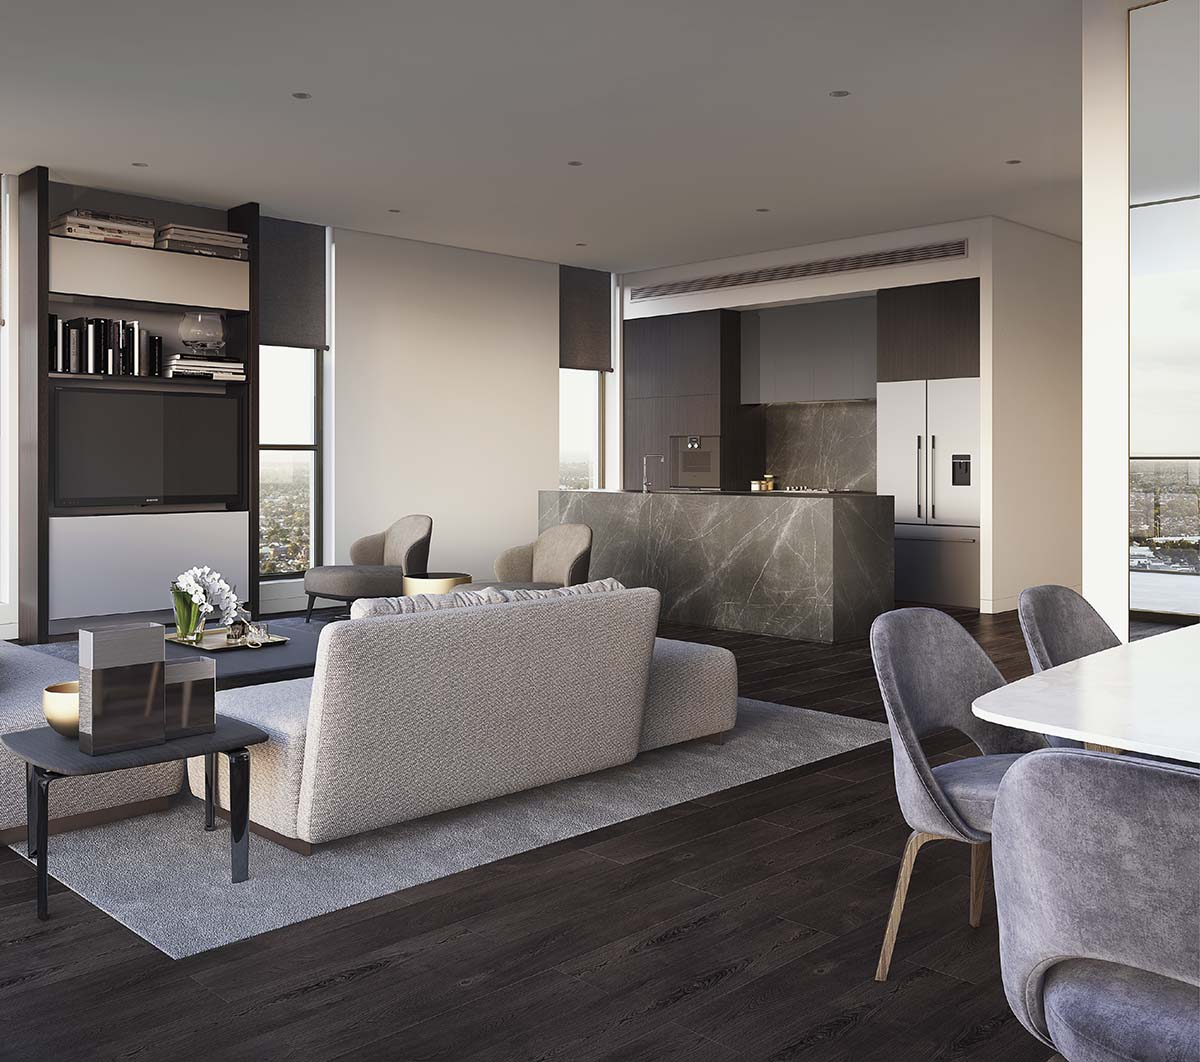 living room and kitchen area in a city apartment